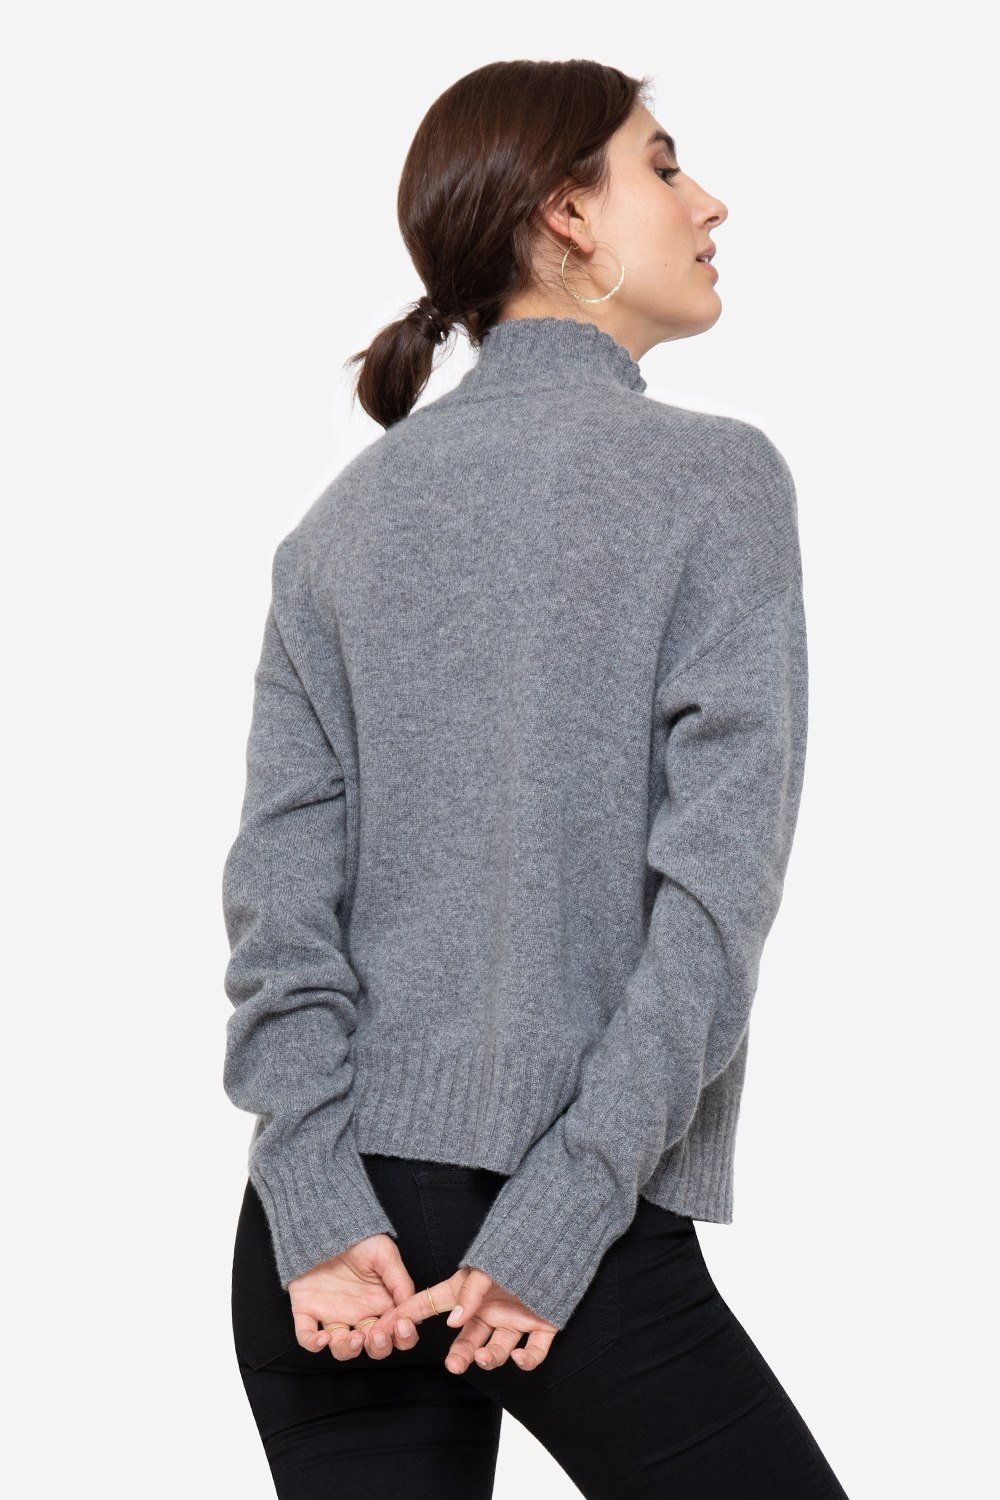 Soft casmere sweater in grey melange with small collar, seen from behind